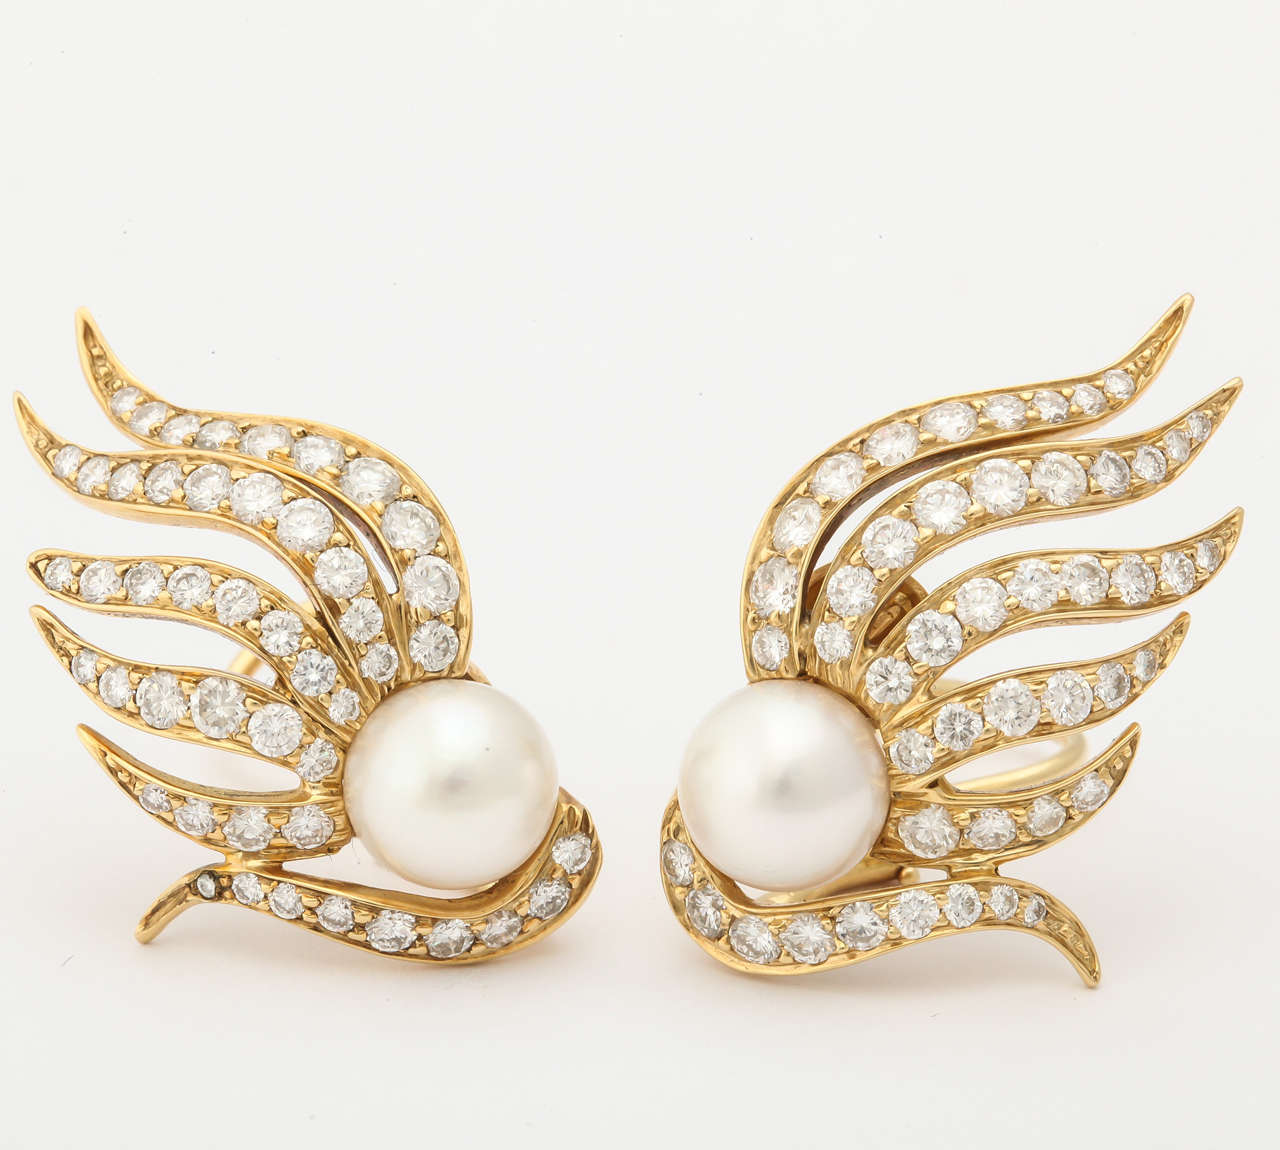 1980s Seaman Schepps Pearl Diamond Gold Flame Earclips For Sale 1